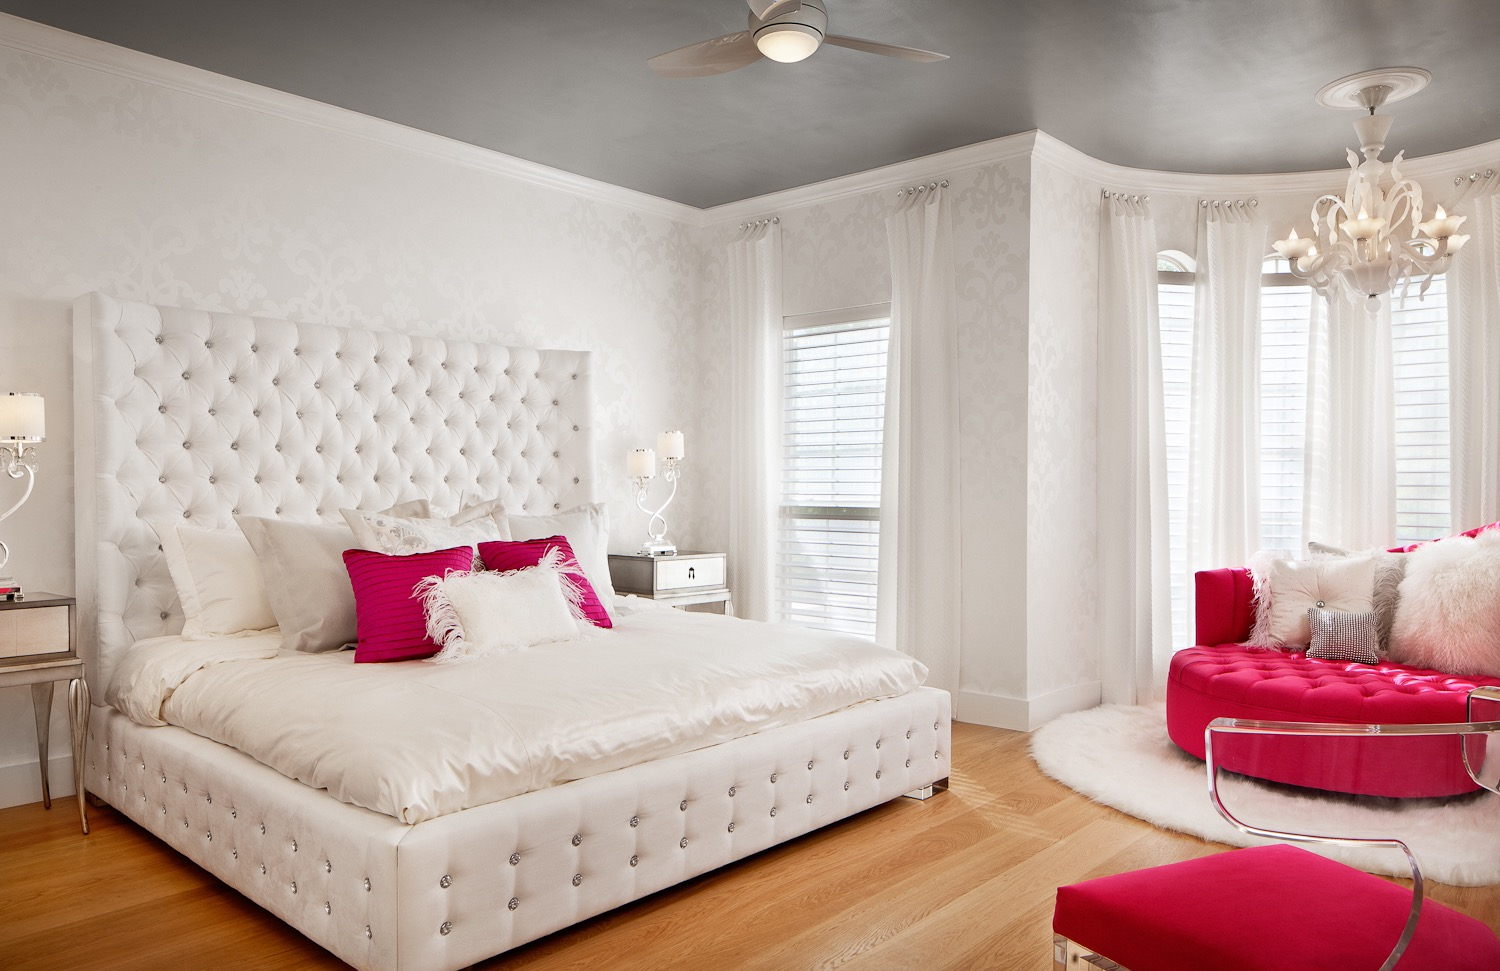 Fun Ideas For A Teenage Girl S Bedroom Decor 16535